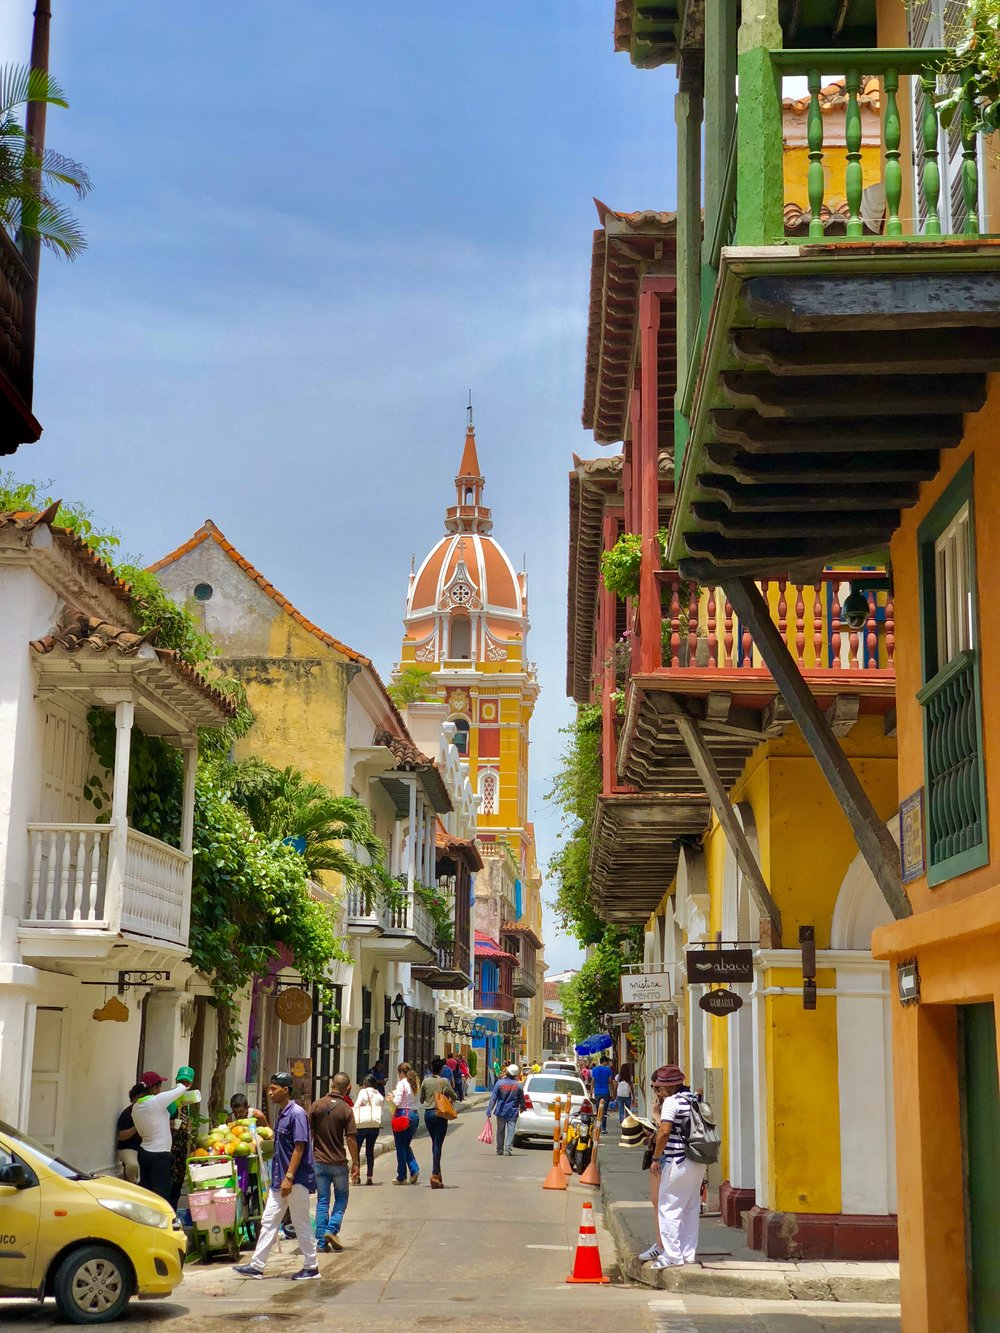 Within the Walled City of Cartagena